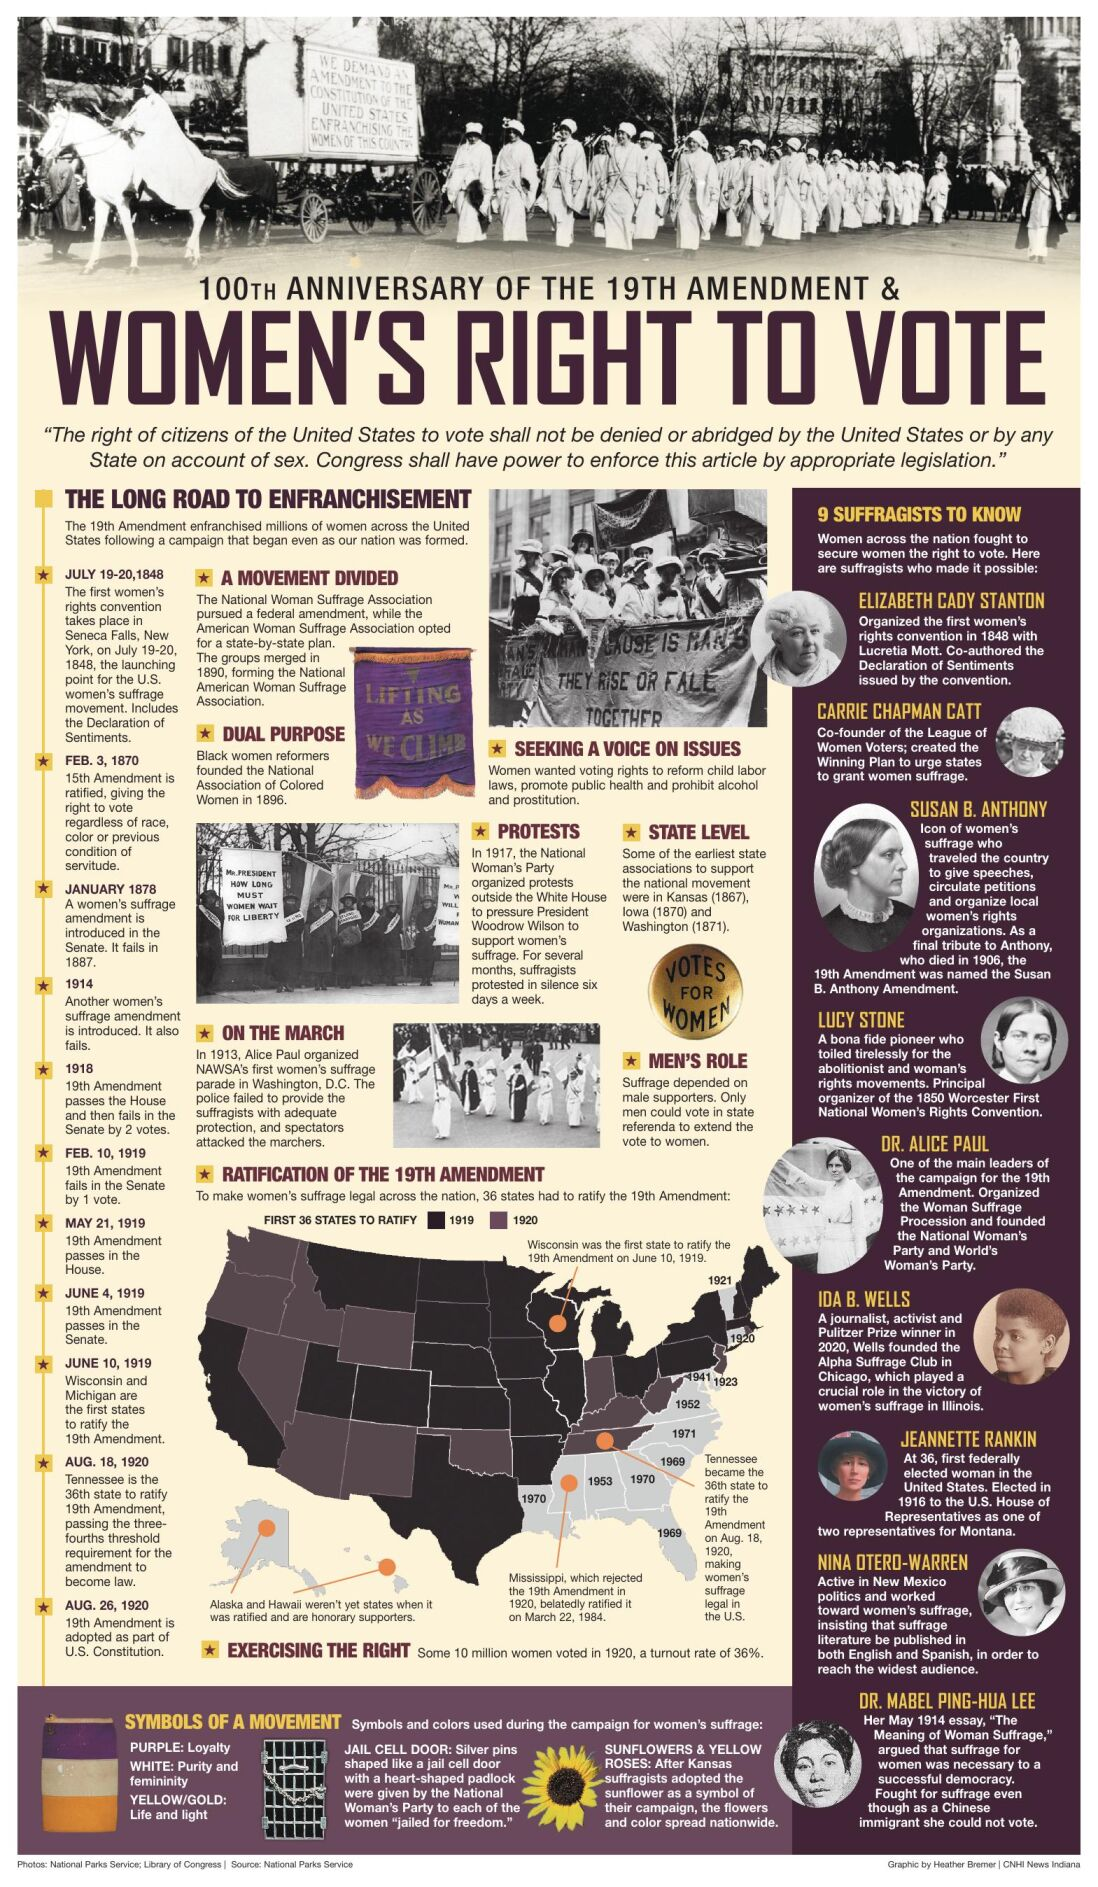 GRAPHIC: 100th anniversary of women's right to vote